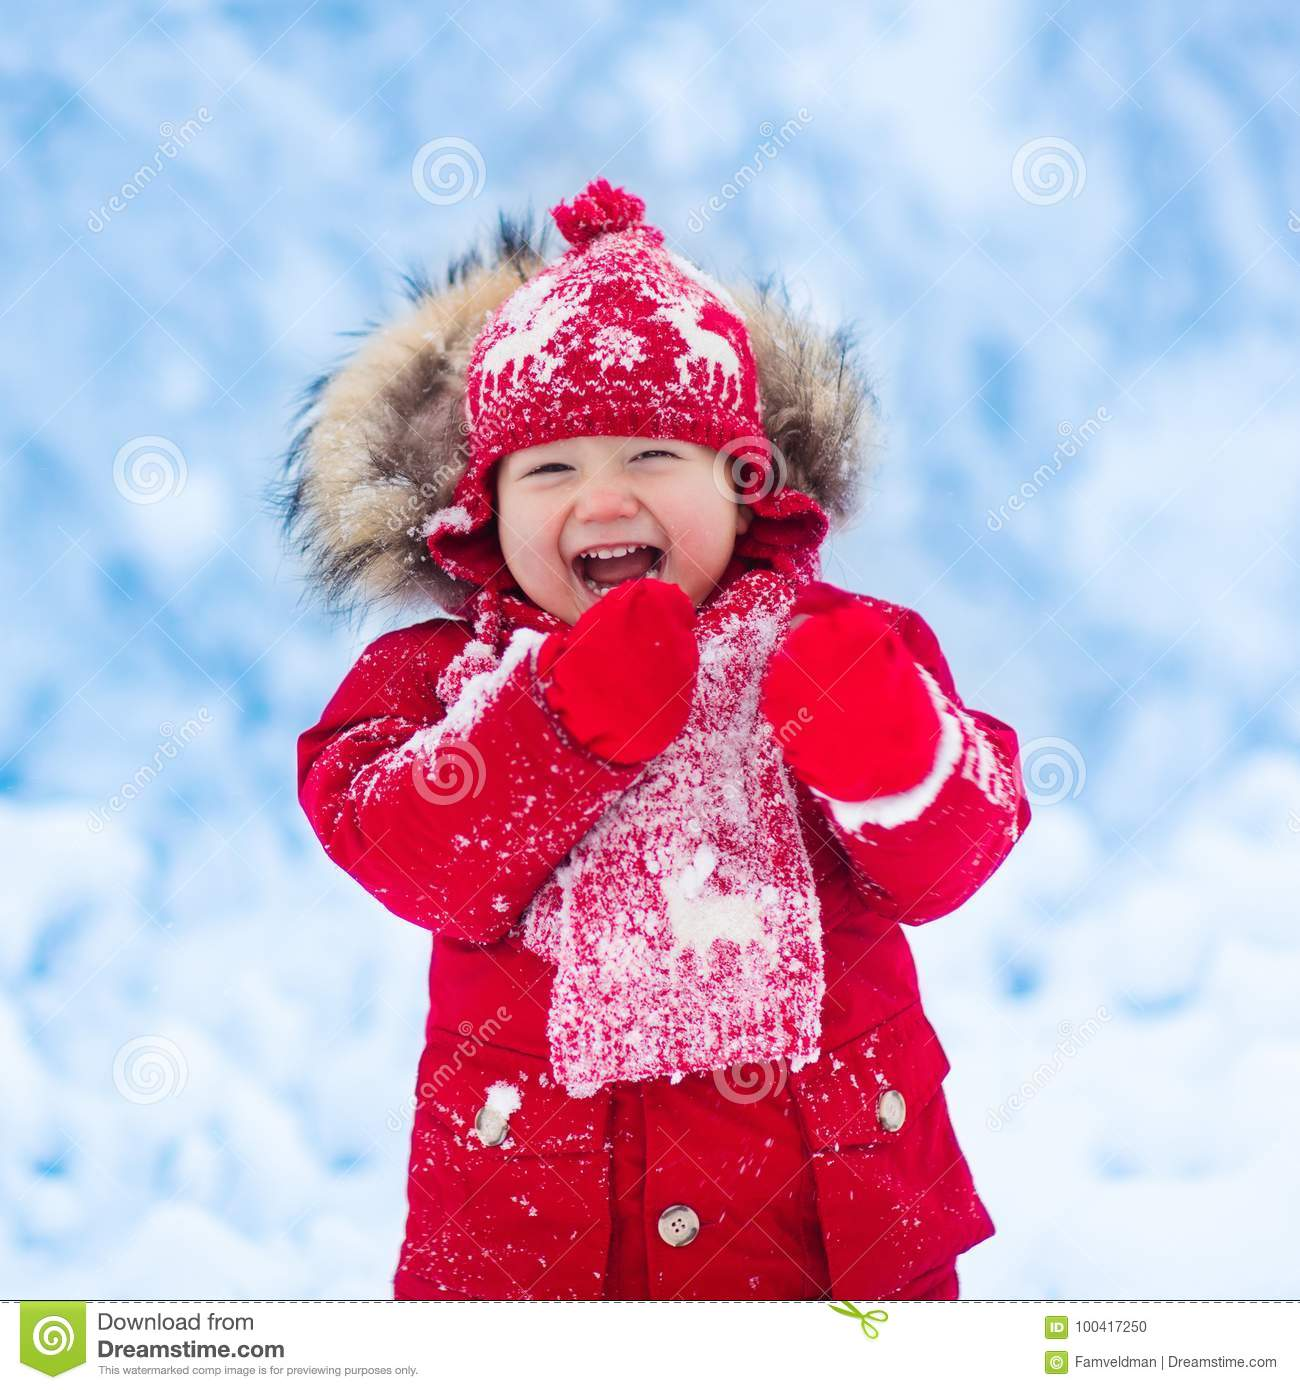 b60b75b8fbd2 Baby Playing With Snow In Winter. Stock Photo - Image of family ...